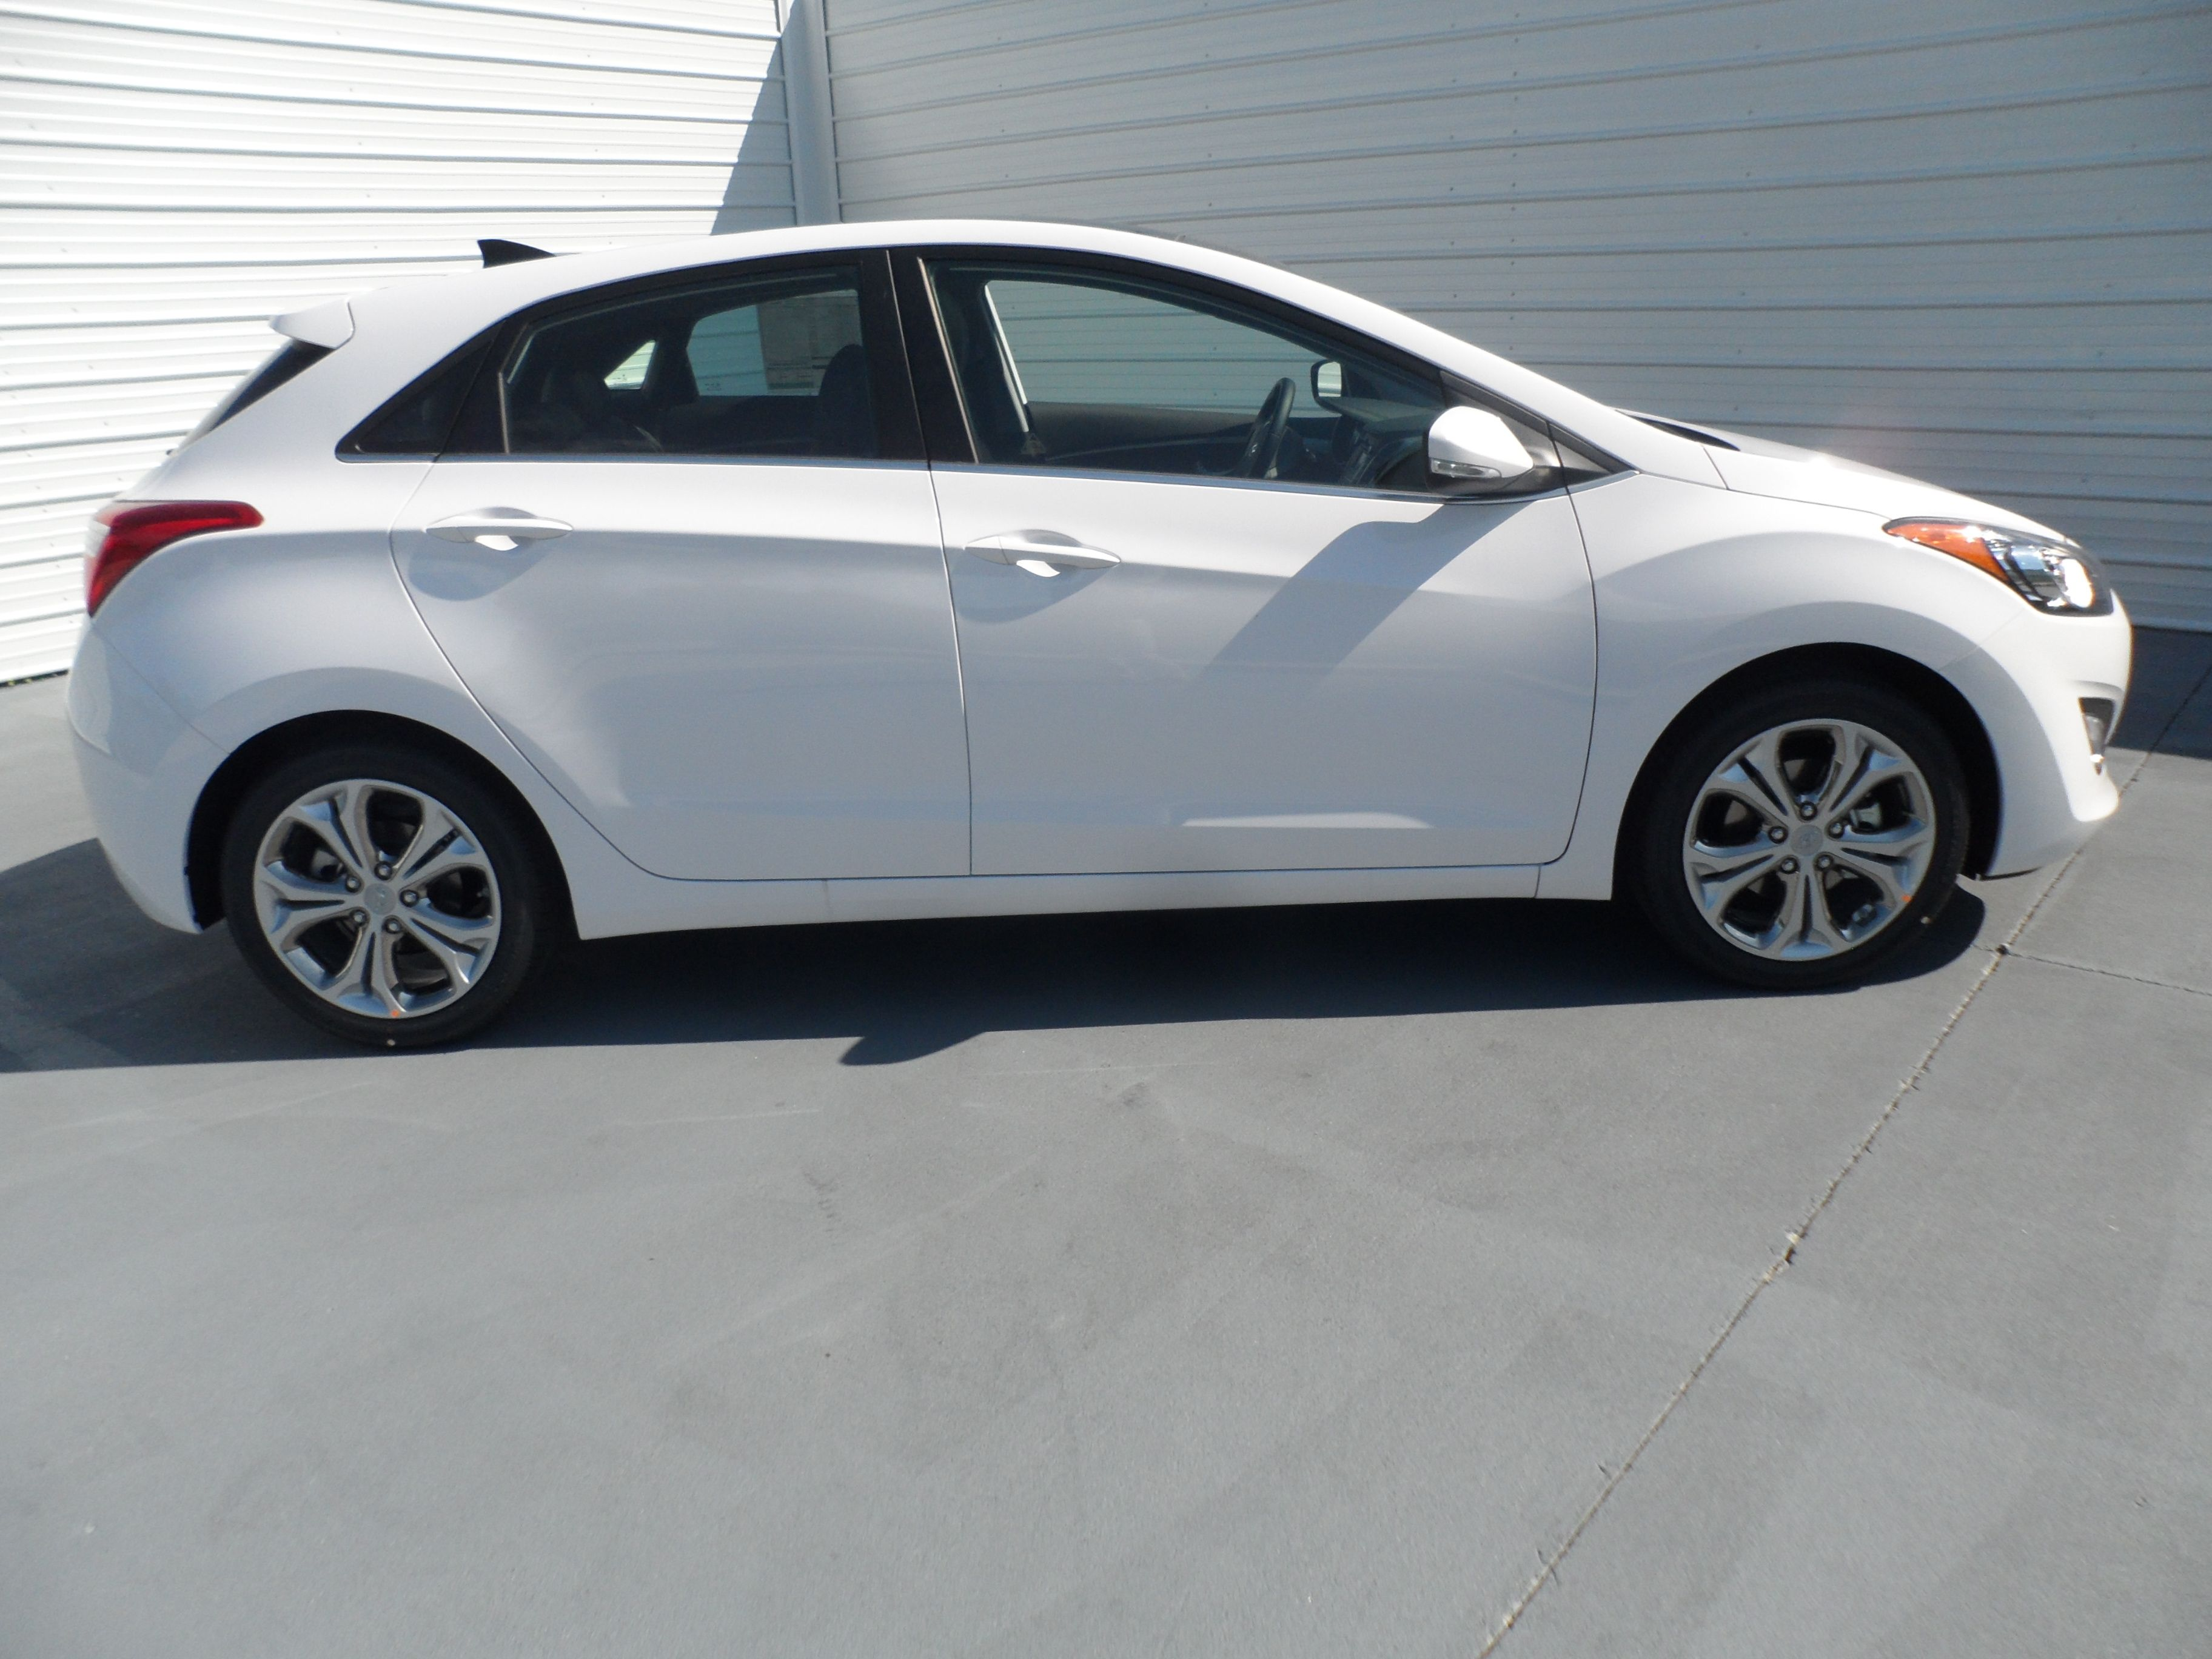 pre used honda charleston country cars savannah vehicles in stock kia owned summerville hyundai racer of